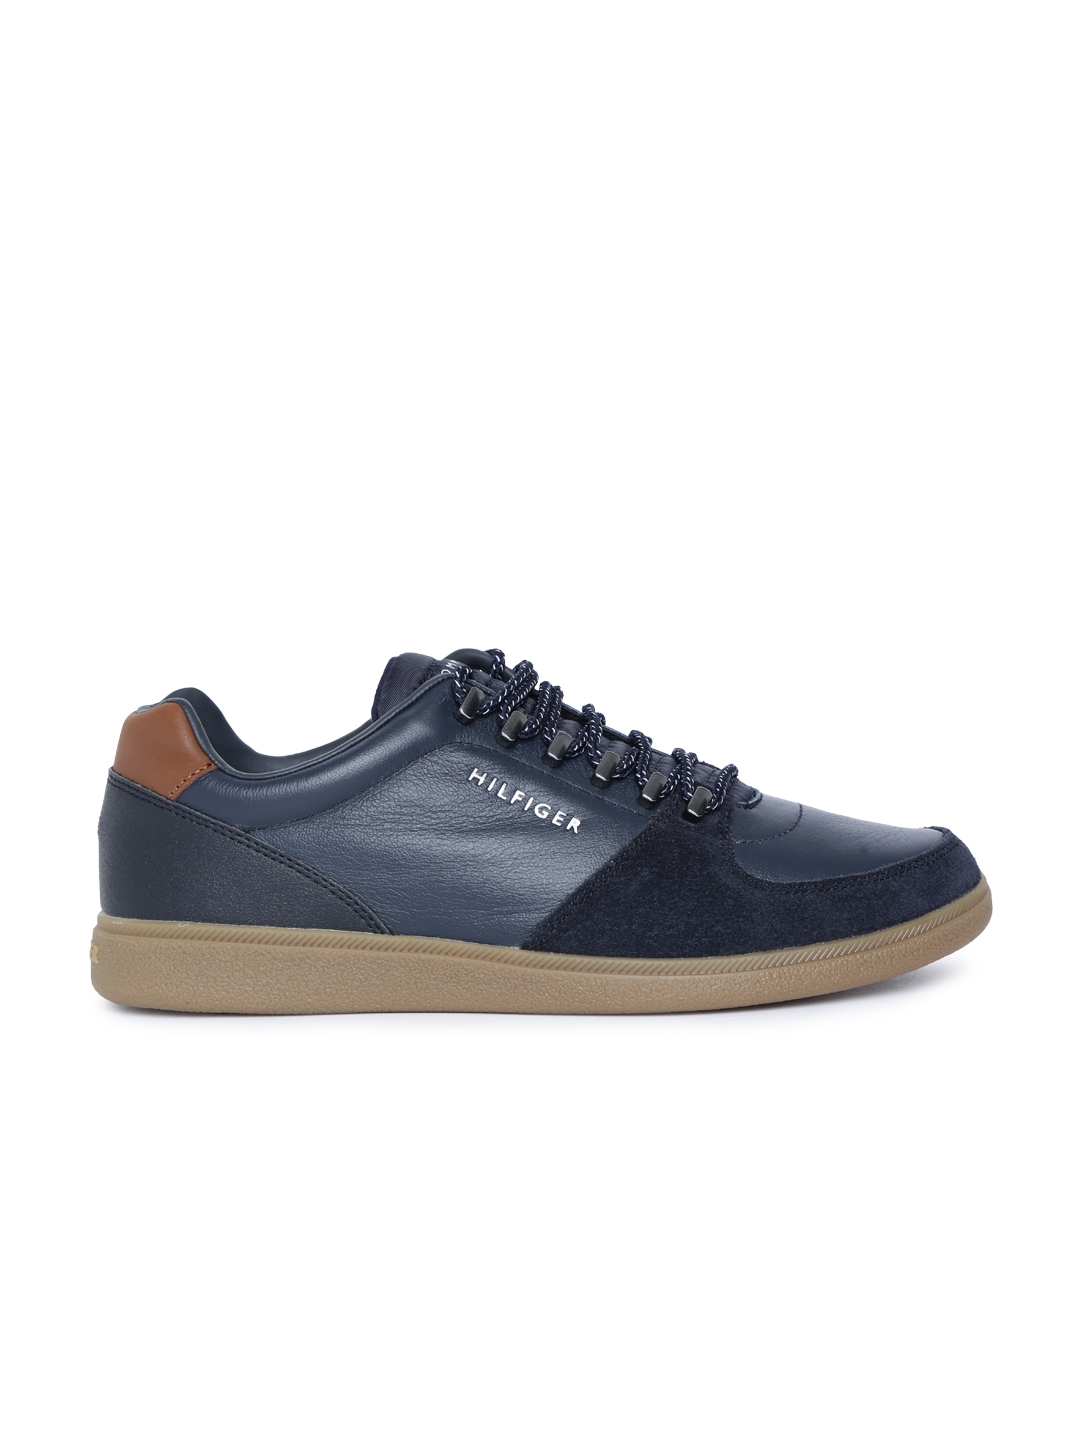 b80cbdea42a5 Buy Tommy Hilfiger Men Midnight Blue Sneakers - Casual Shoes for Men ...